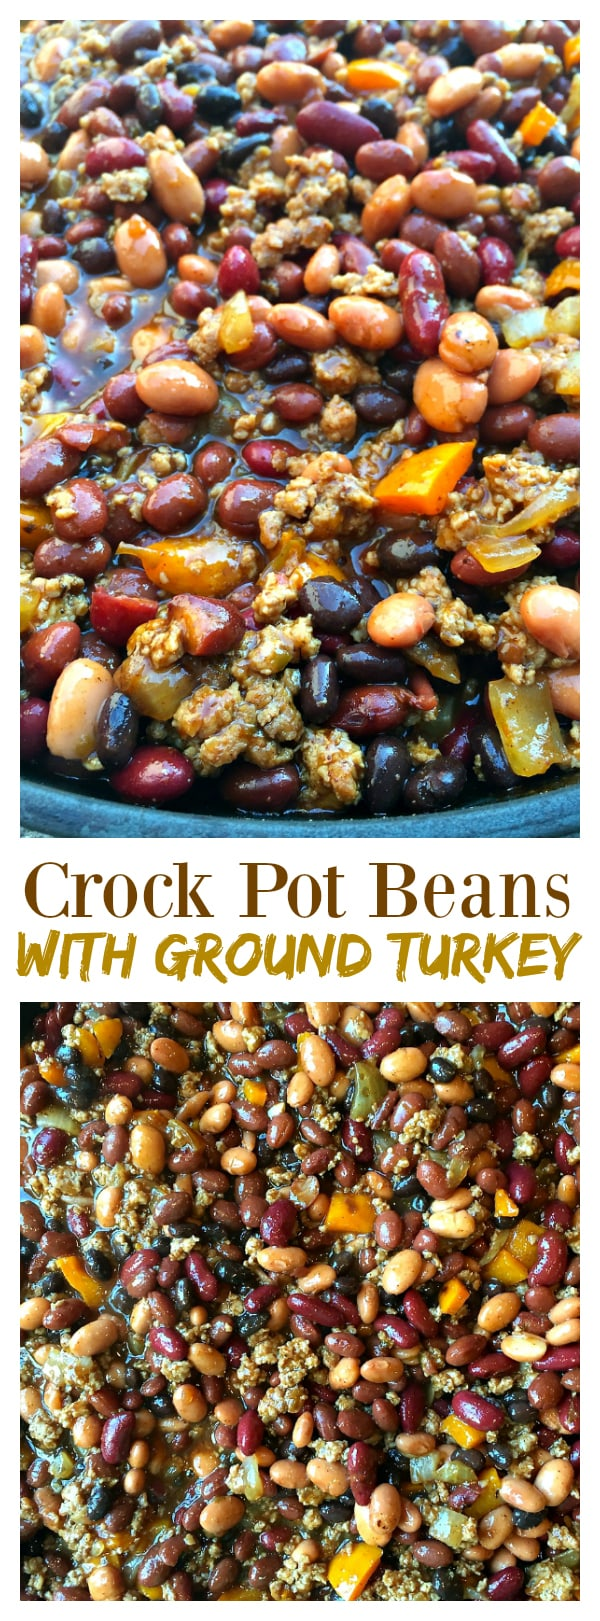 Crock Pot Beans with Ground Turkey for Game Day or a potluck!